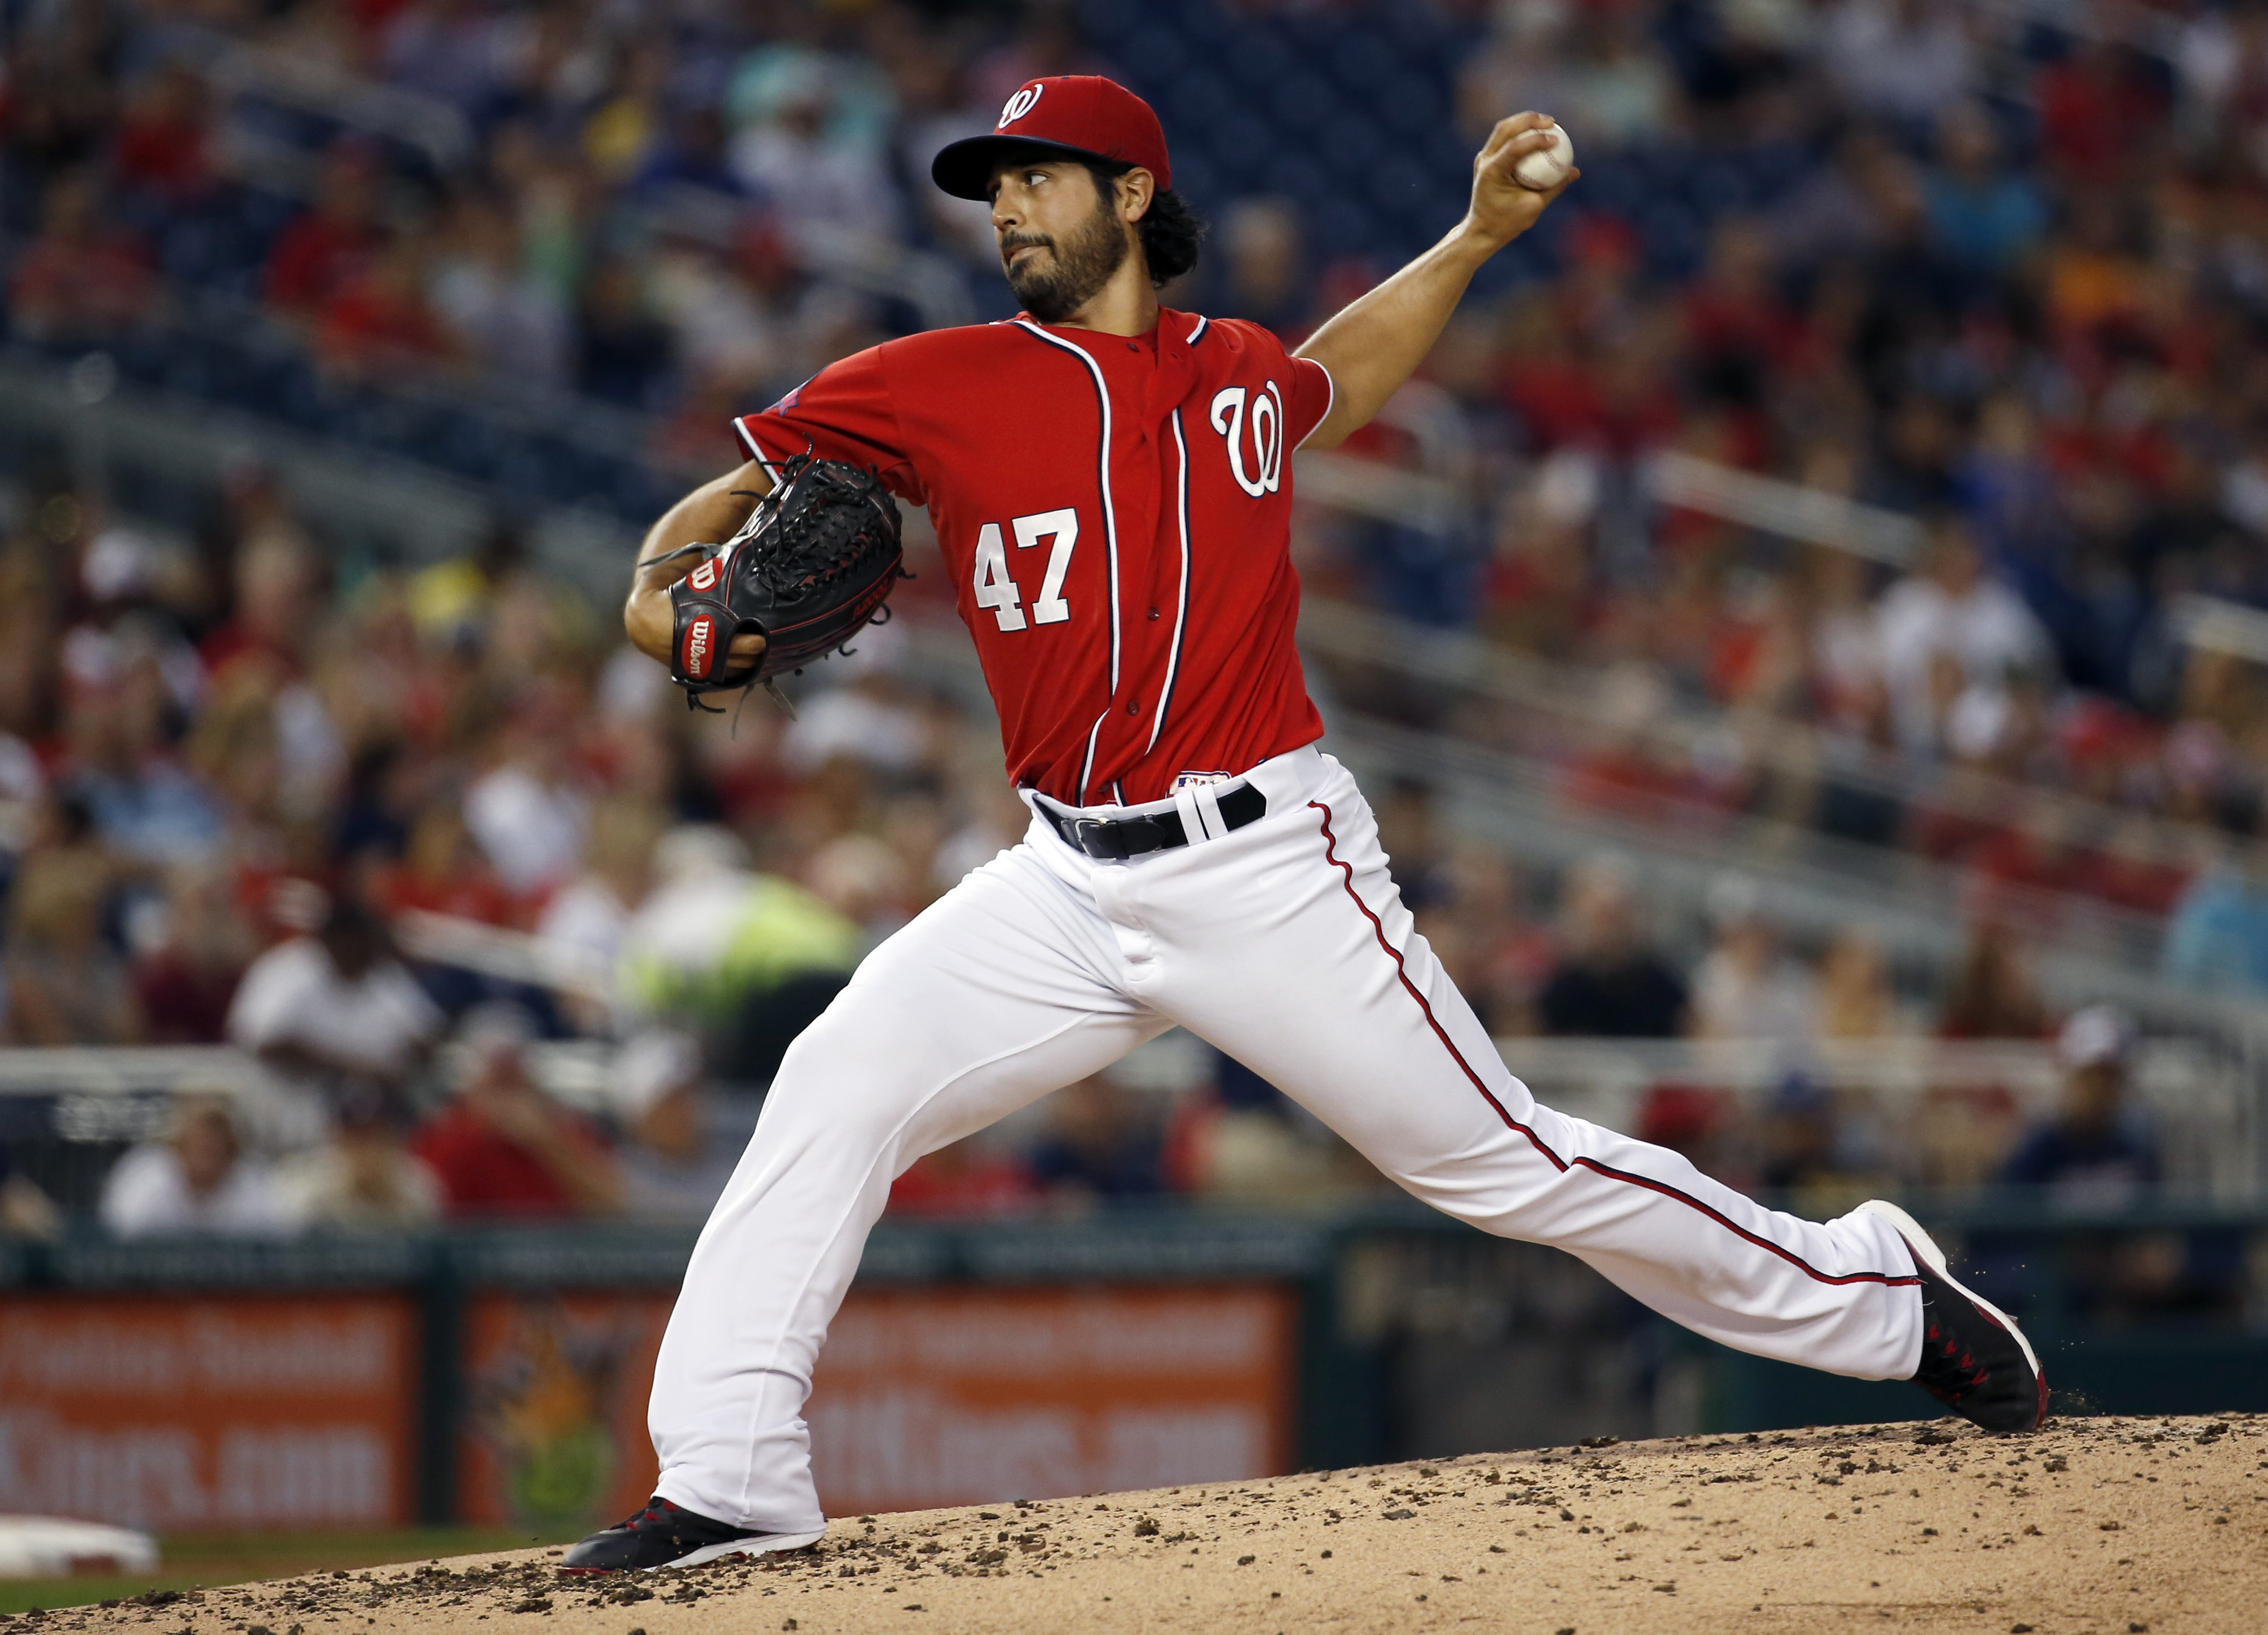 Washington Nationals starting pitcher Gio Gonzalez throws during the third inning of a baseball game against the Atlanta Braves at Nationals Park, Saturday, Sept. 5, 2015, in Washington. (AP Photo/Alex Brandon)